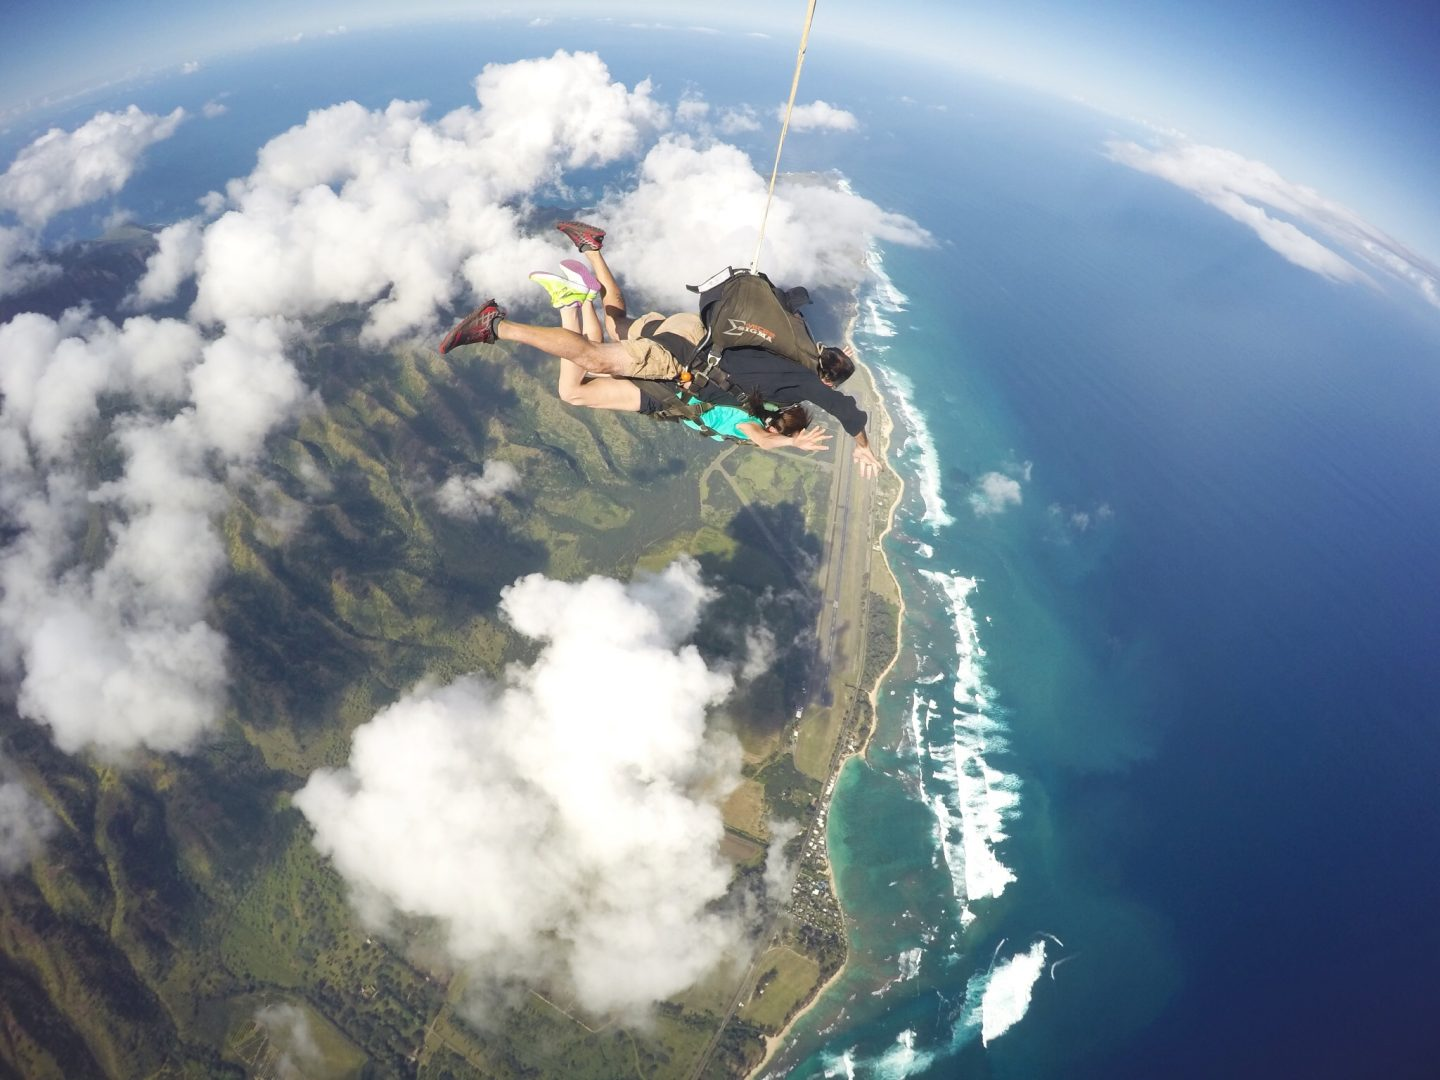 Skydiving with Skydive Hawaii